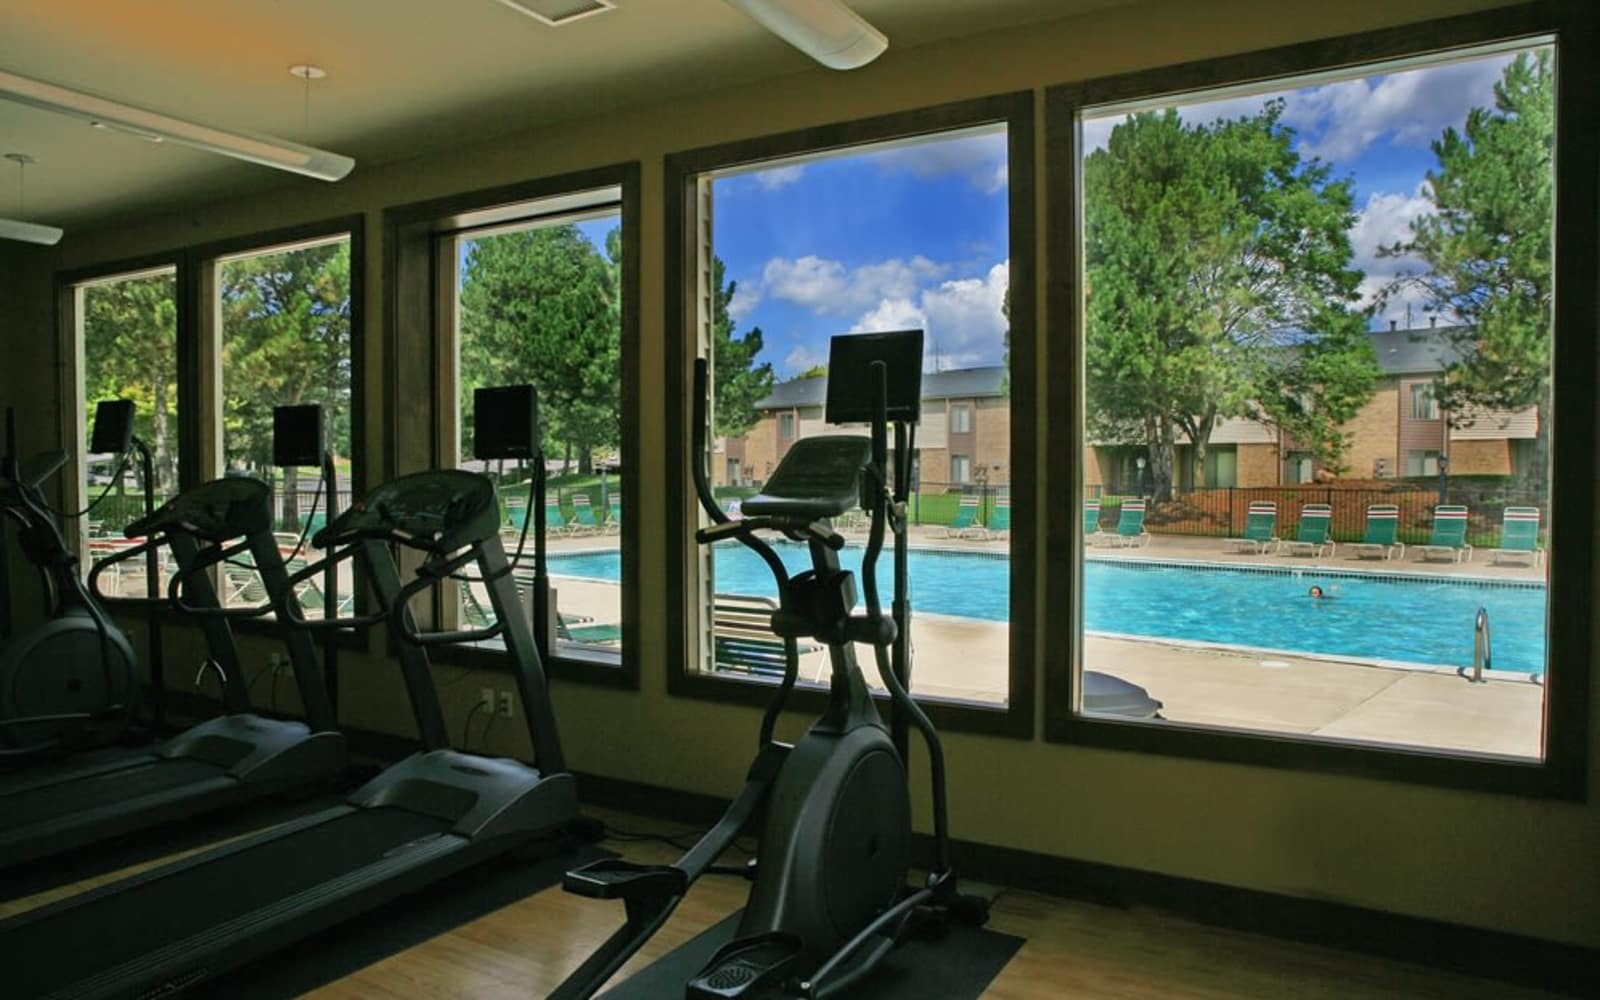 Fitness center and swimming pool at Fairmont Park Apartments in Farmington Hills, Michigan